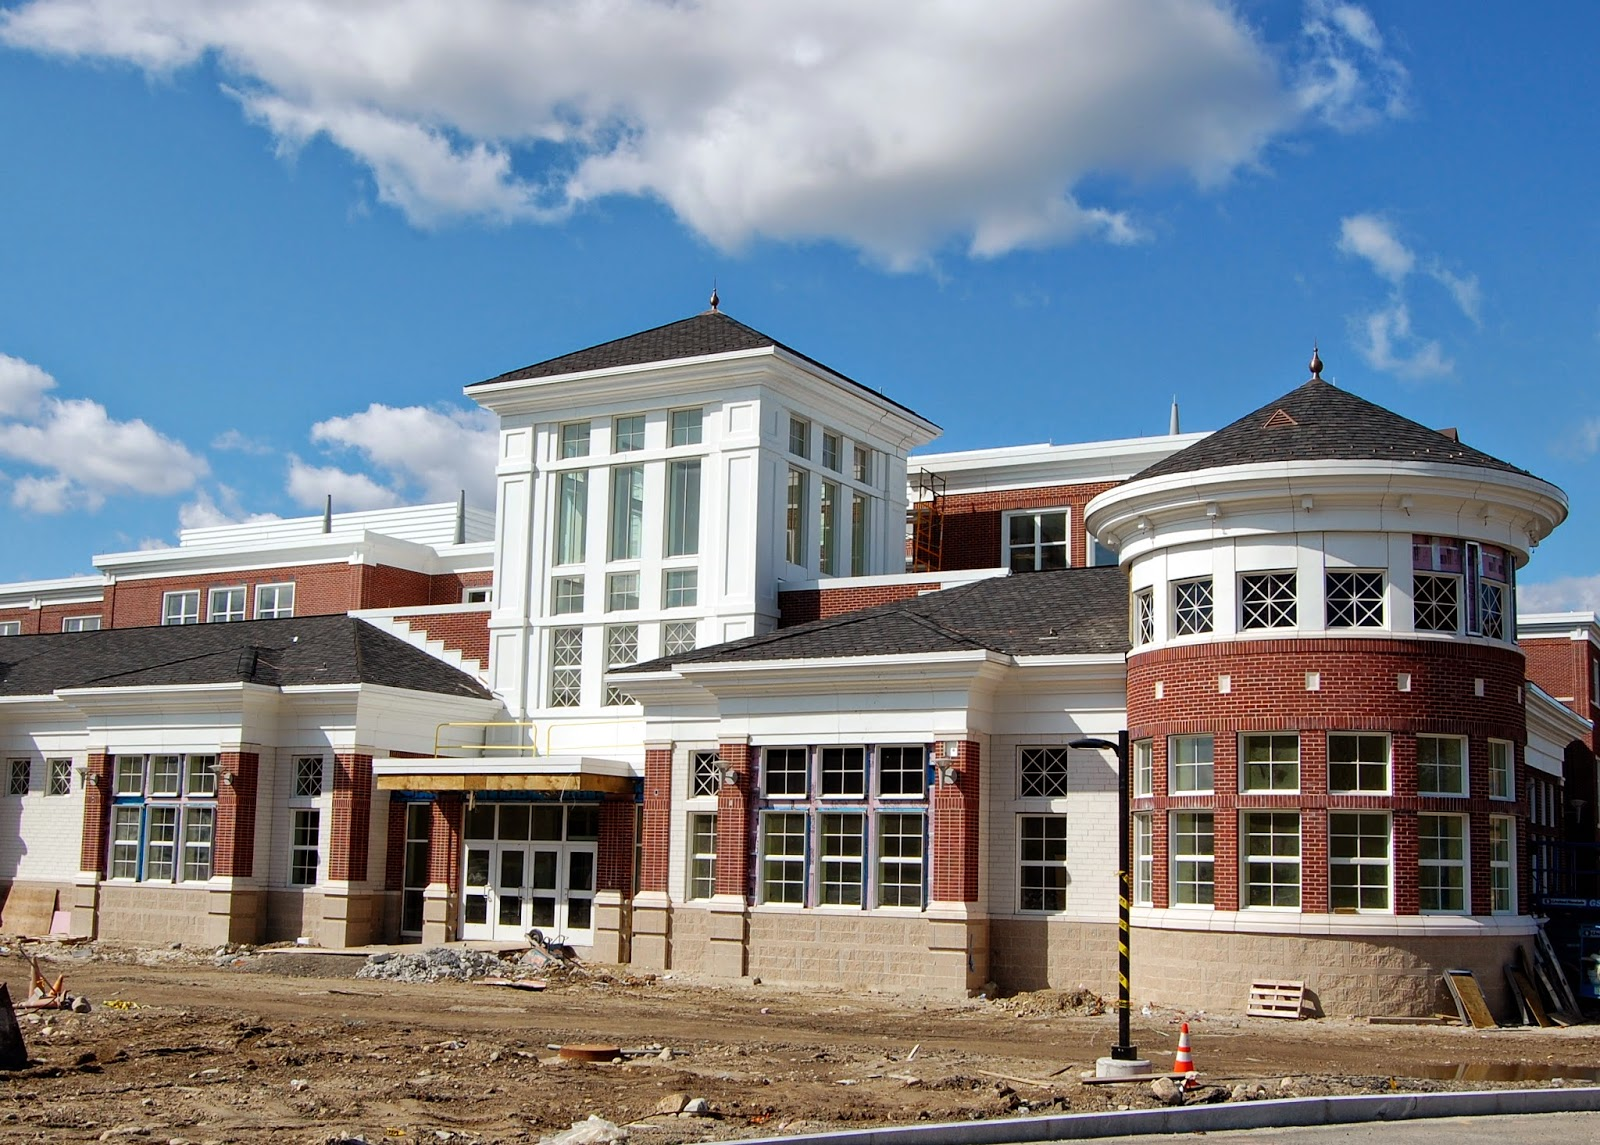 the new Franklin High School under construction